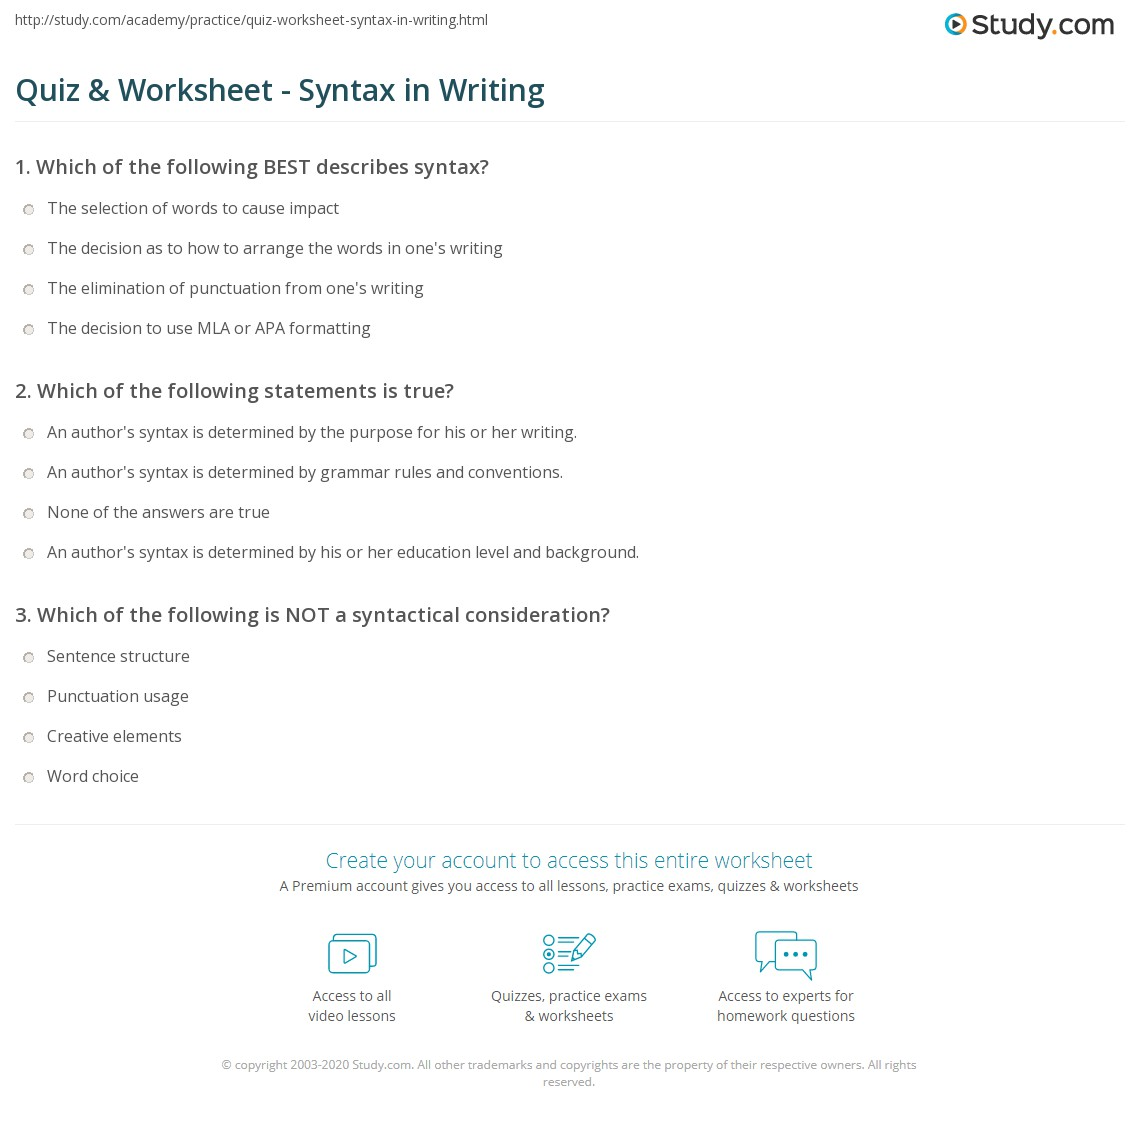 worksheet Syntax Worksheets quiz worksheet syntax in writing study com print definition examples worksheet